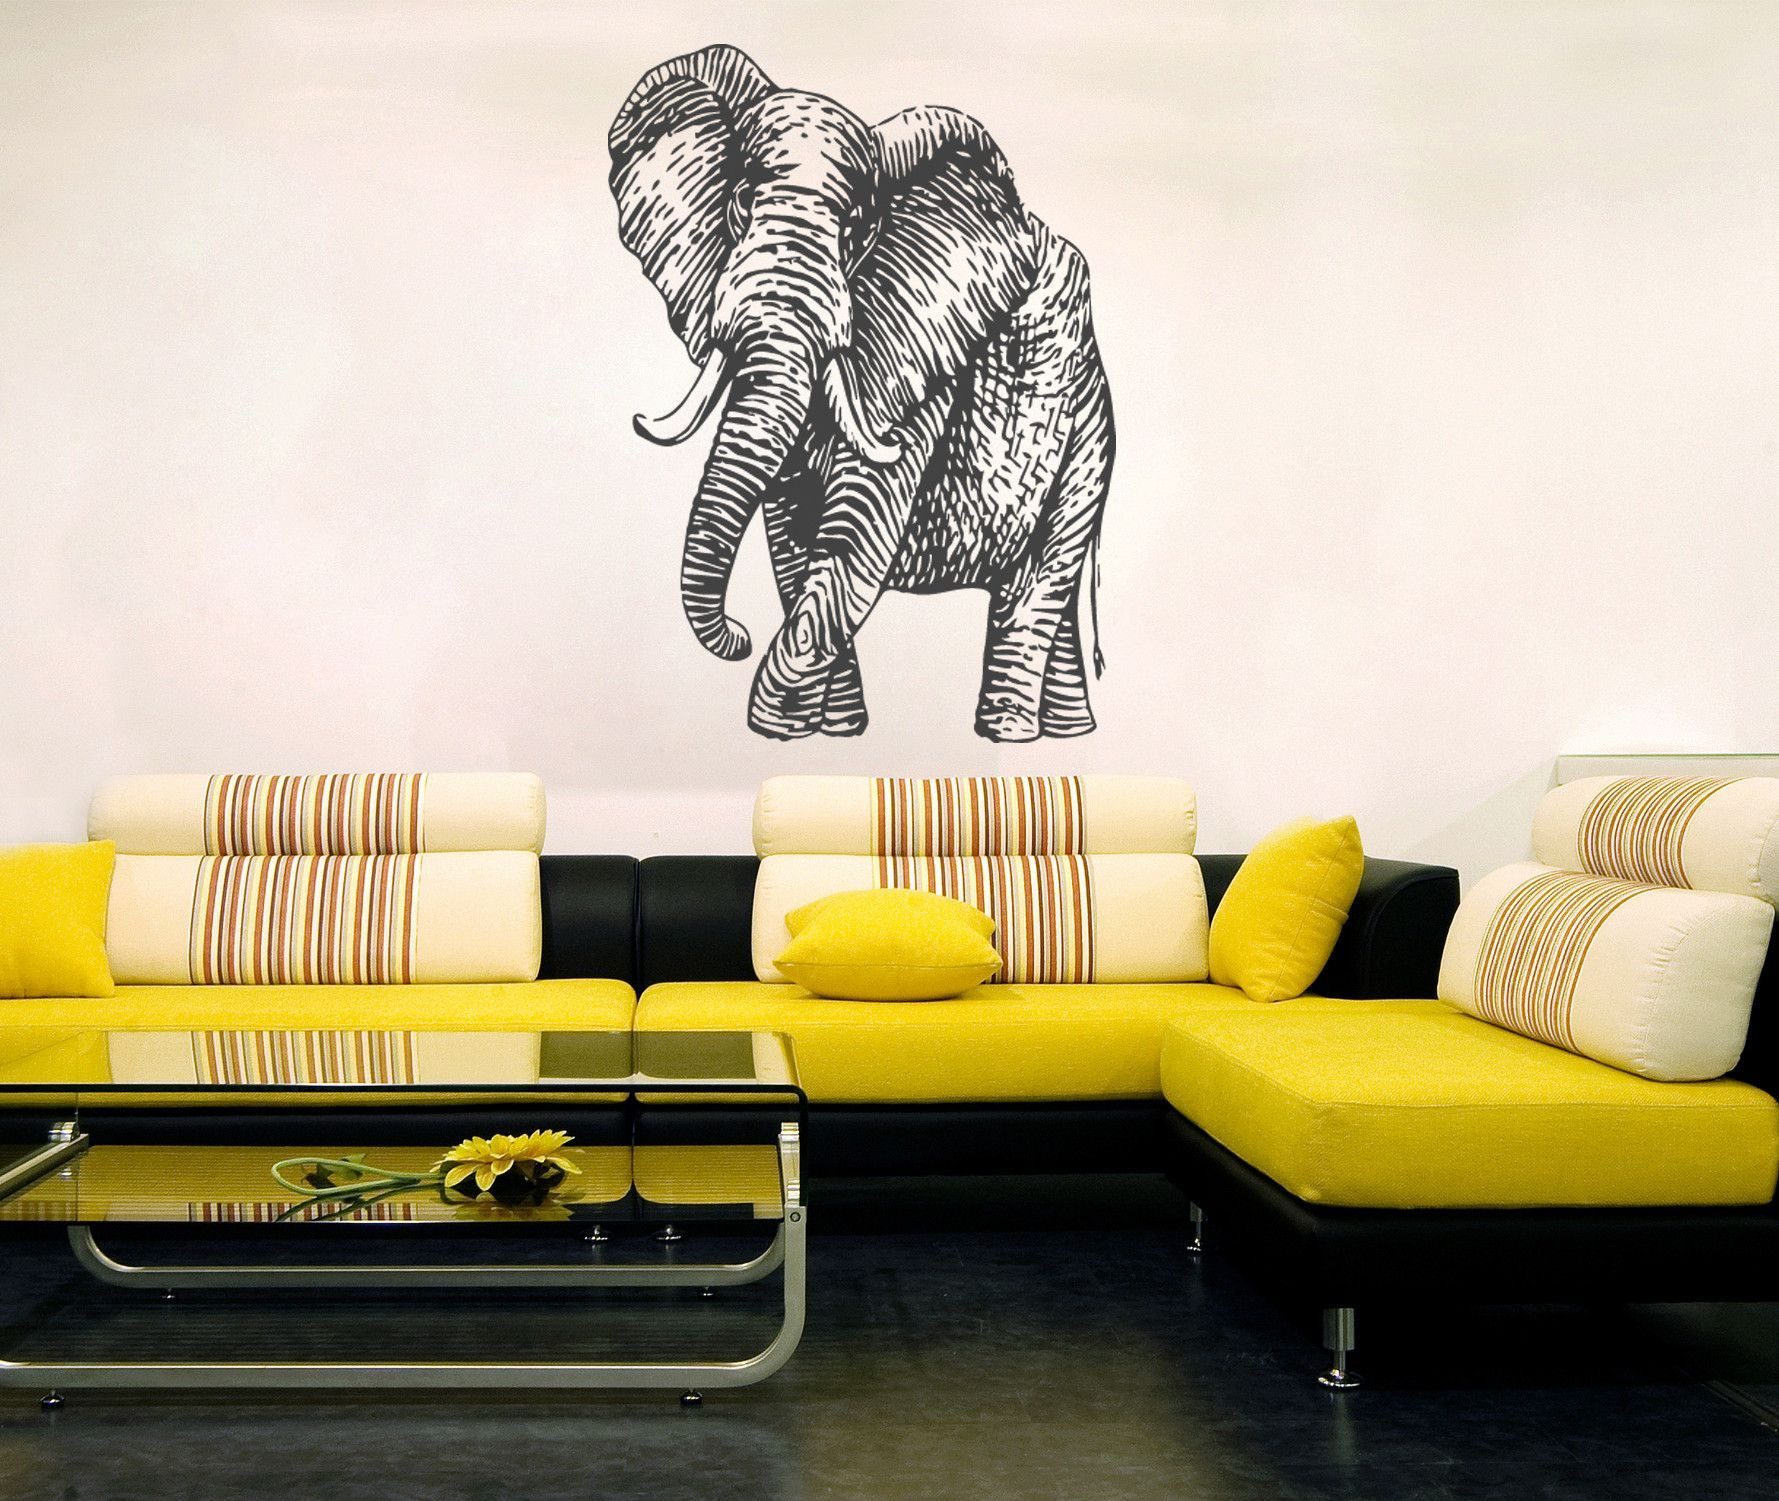 ik273 Wall Decal Sticker Decor elephant interior bed | Wall decal ...